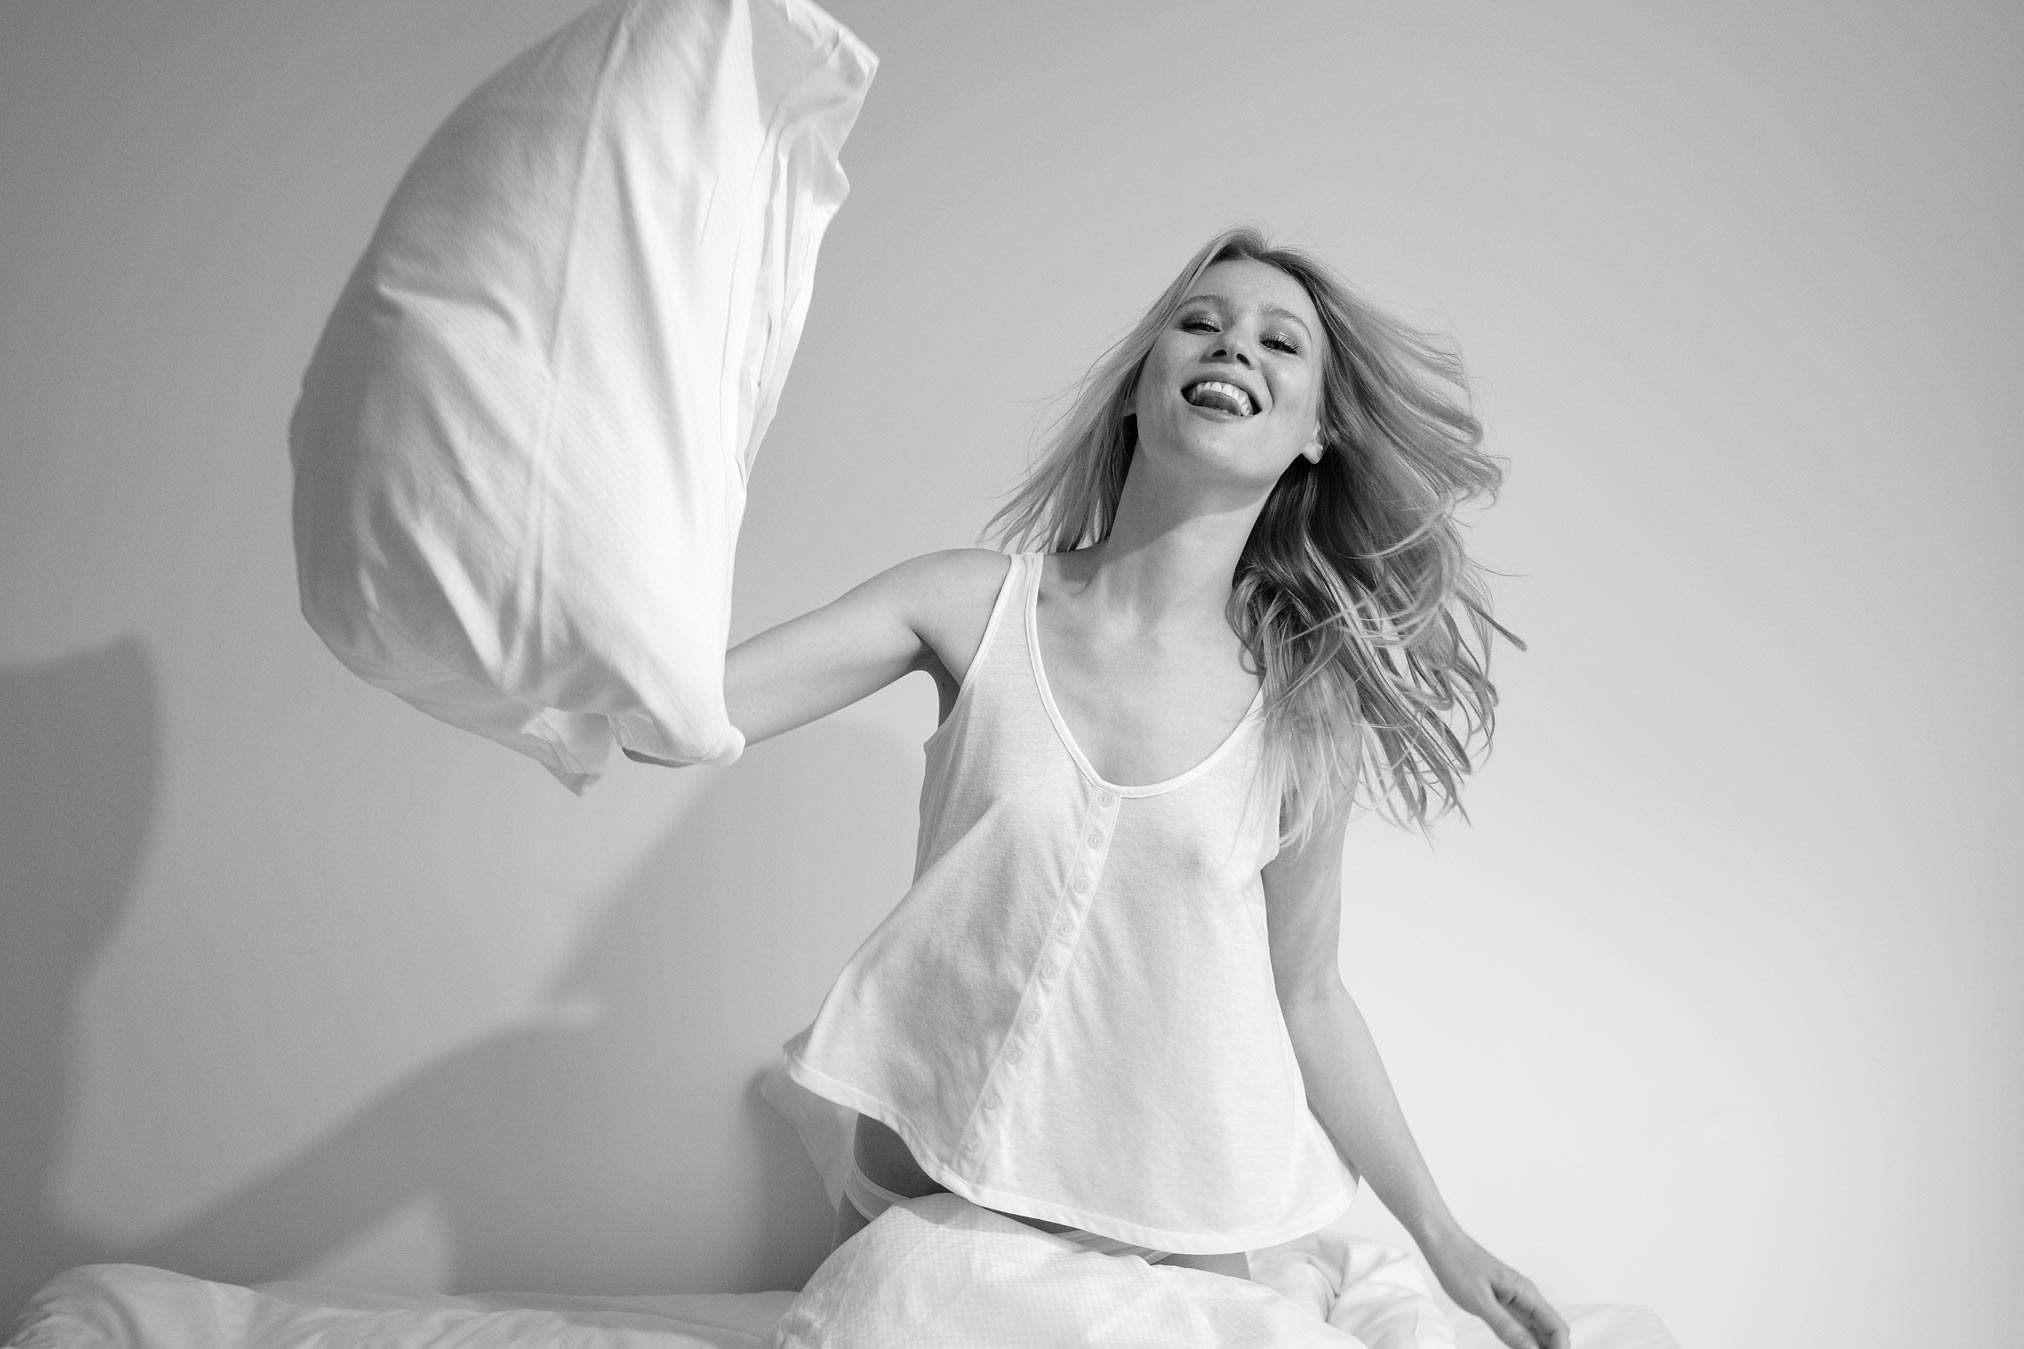 Melanie Beckendorff-Leavens having a pillow fight in an apartment in Copenhagen. Monochrome print by Damien Lovegrove